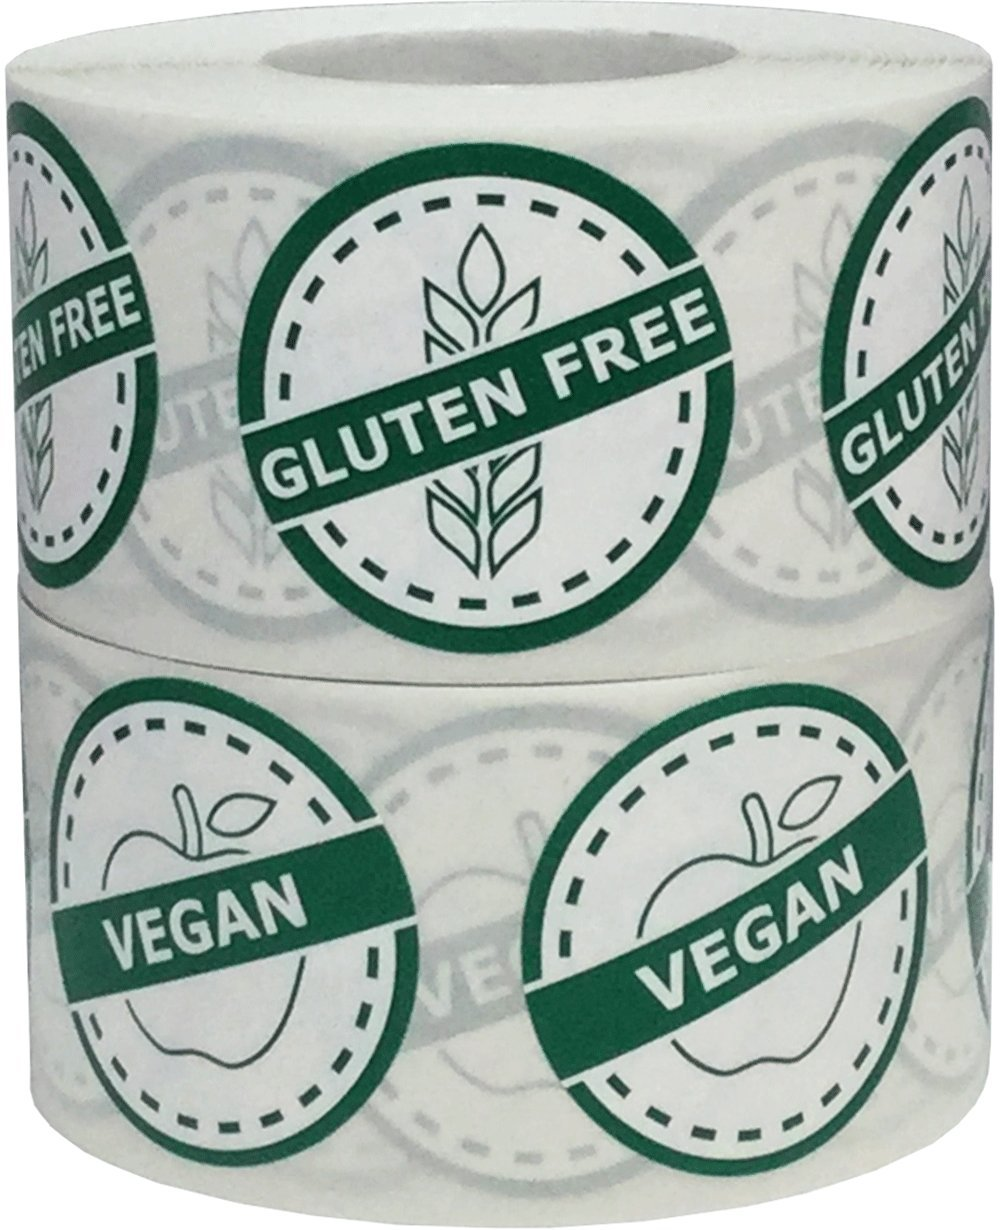 Vegan and Gluten Free Food Rotation Labels Value Pack 1 1/4 Inch Round Circle Dots 1,000 Adhesive Stickers by InStockLabels.com